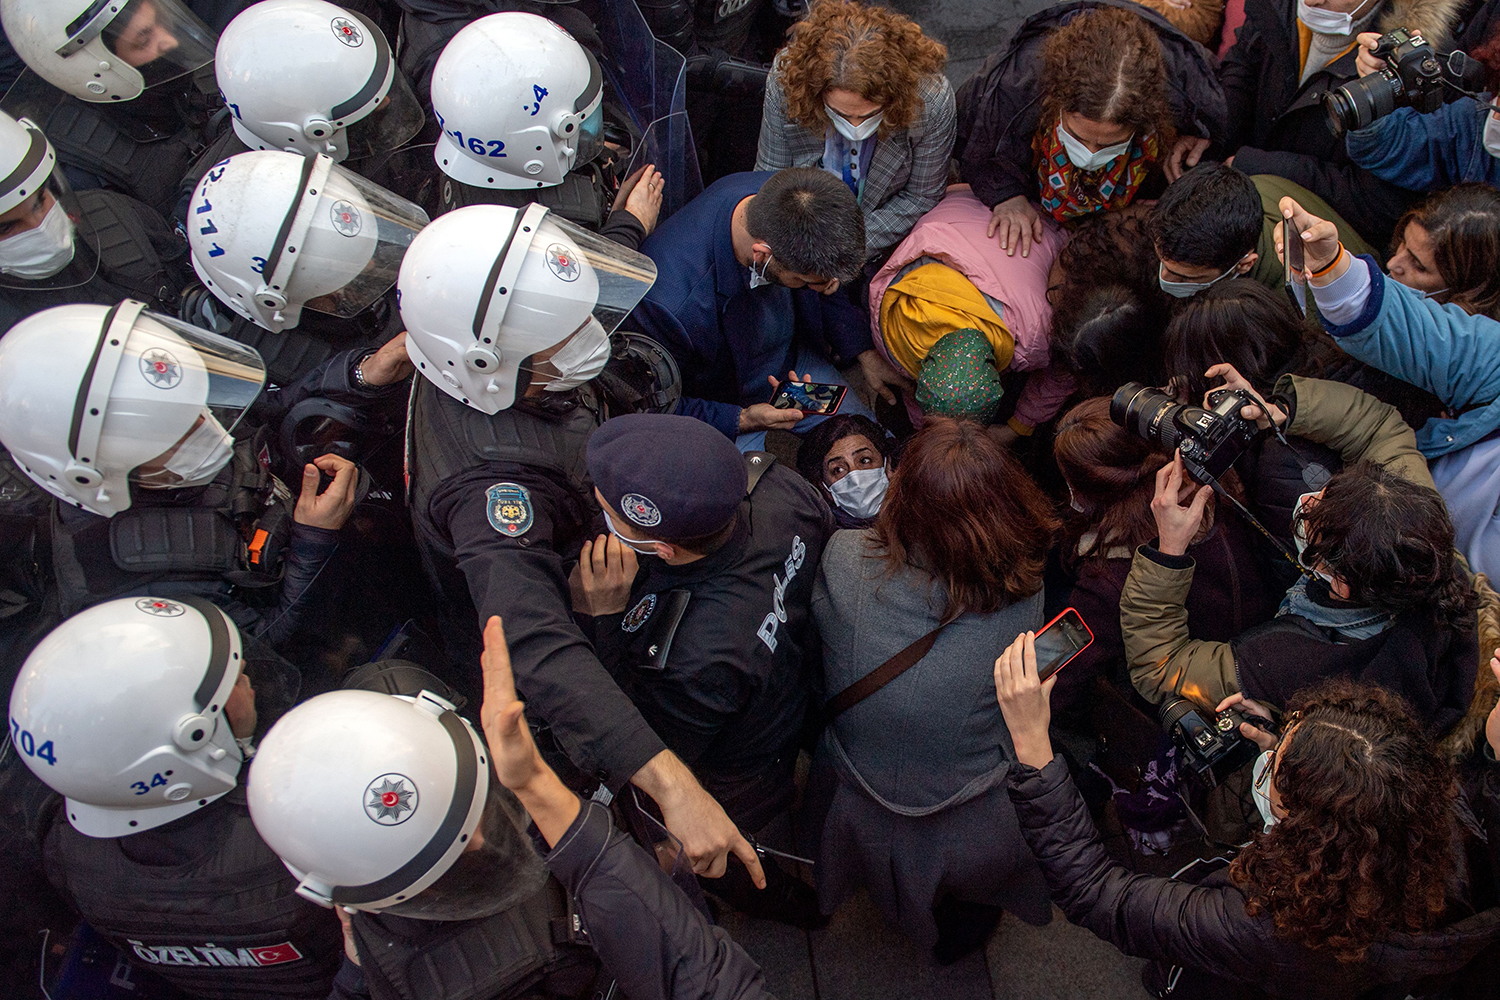 Turkish police officers detain protesters fighting against the appointment of Melih Bulu, a ruling Justice and Development Party loyalist, as the new rector of Bogazici University in Istanbul on Feb. 4. BULENT KILIC/AFP via Getty Images